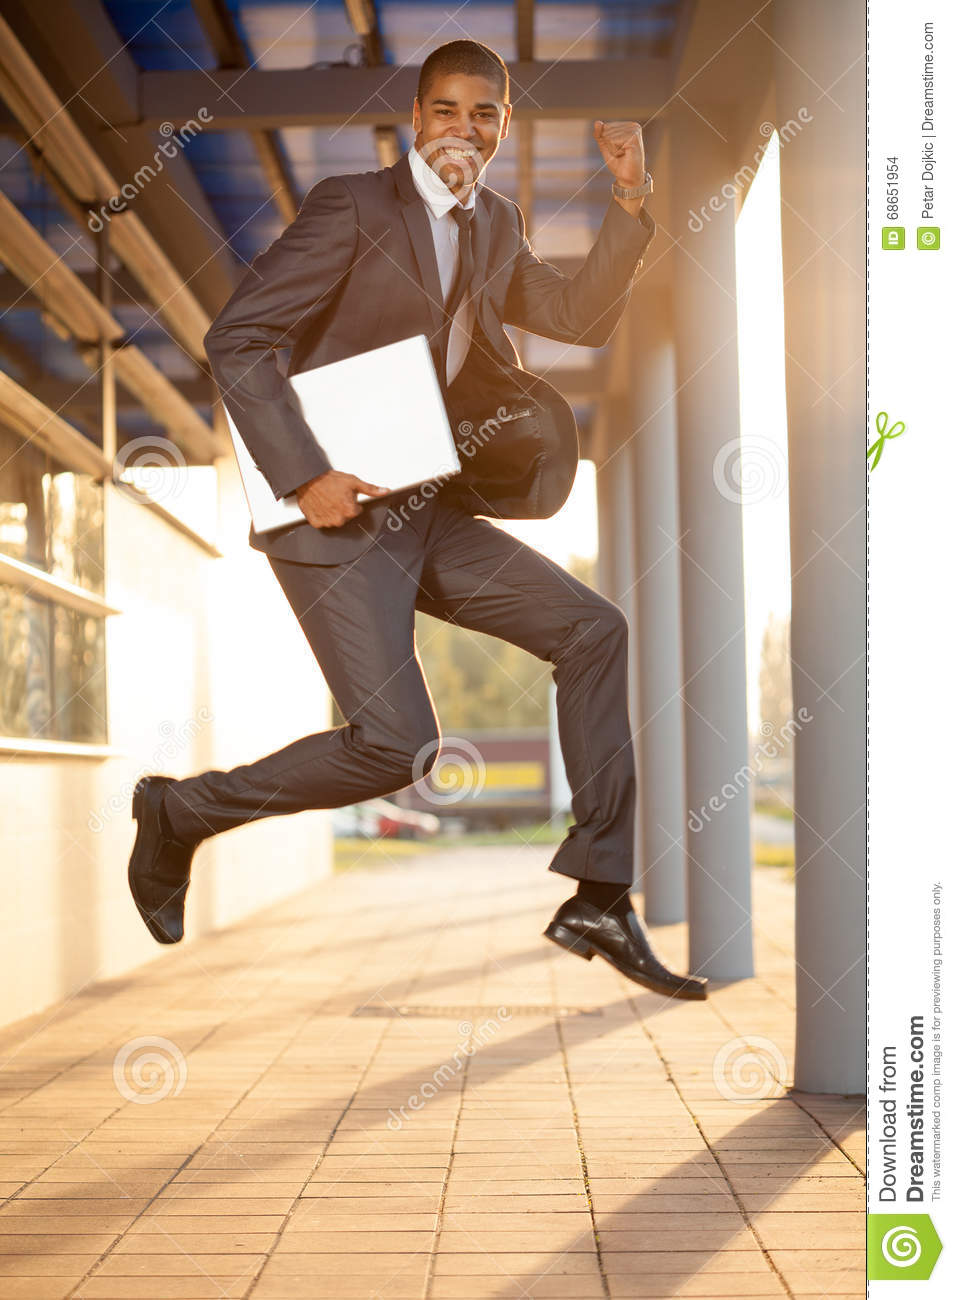 Businessman jumping, happy about the successful conclusion of a